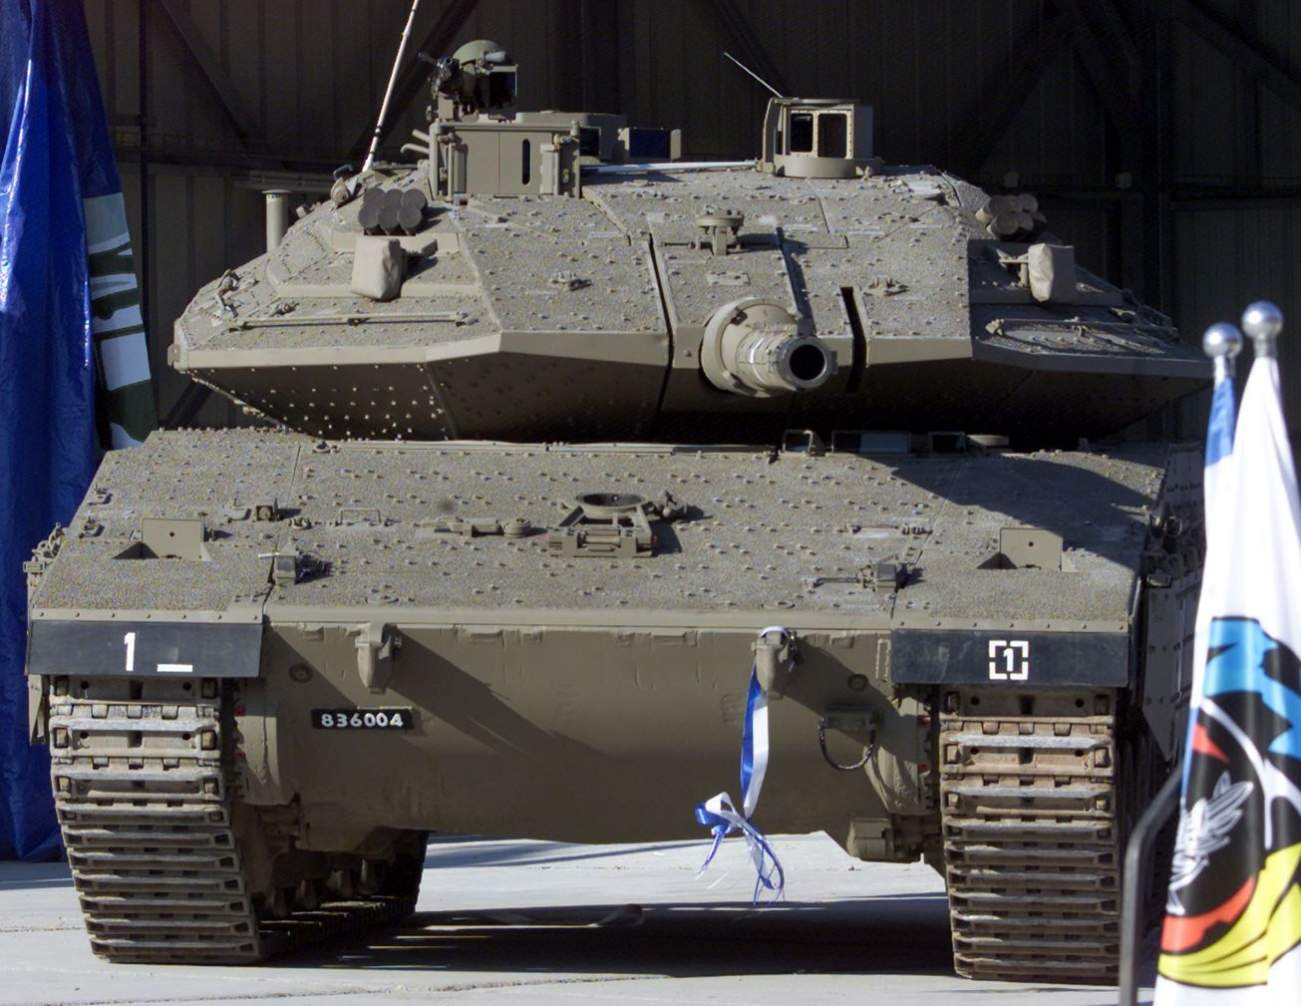 Unstoppable: Why Israel Will Likely Never Be Defeated in a War